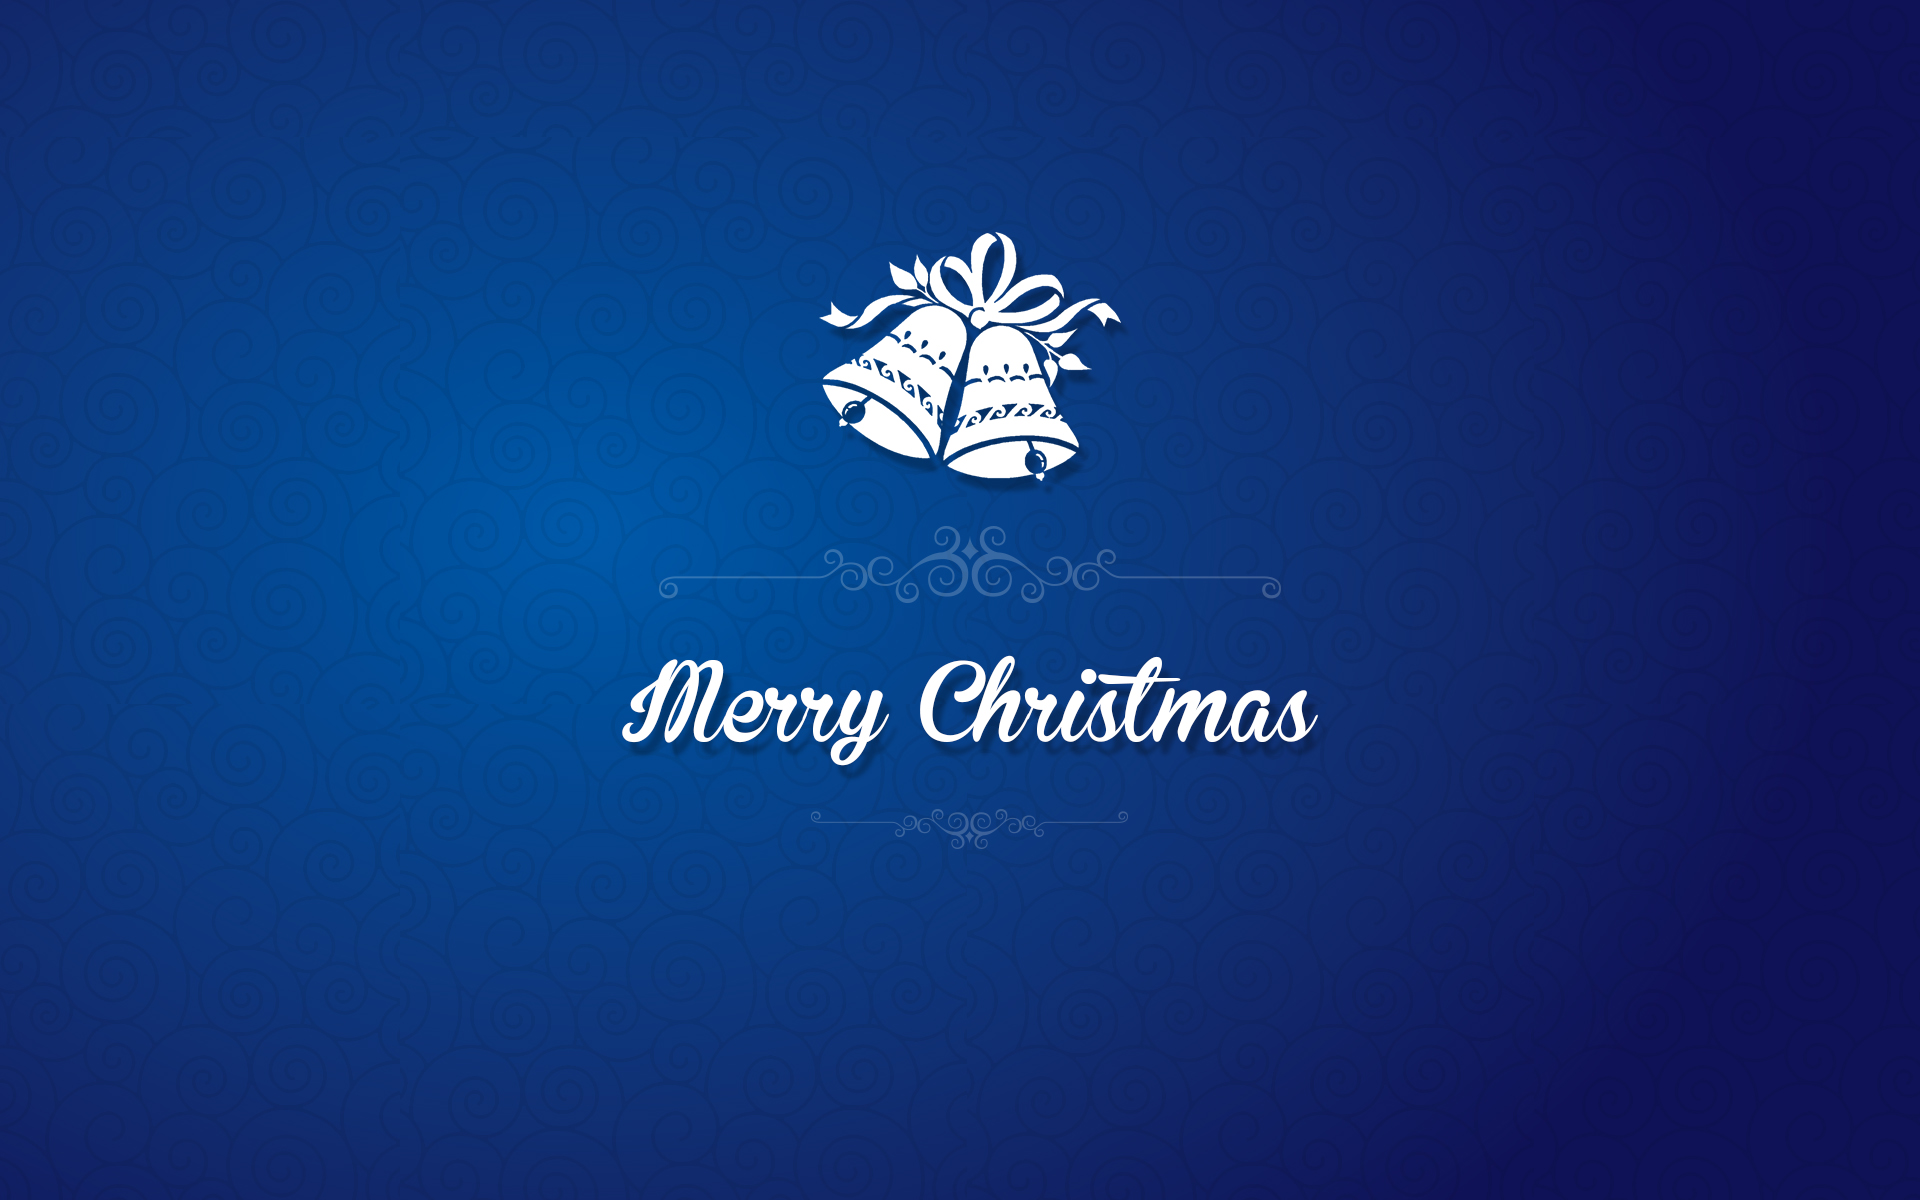 Animated Wallpaper Windows 8 Free Free Merry Christmas Wallpapers And Desktop Background